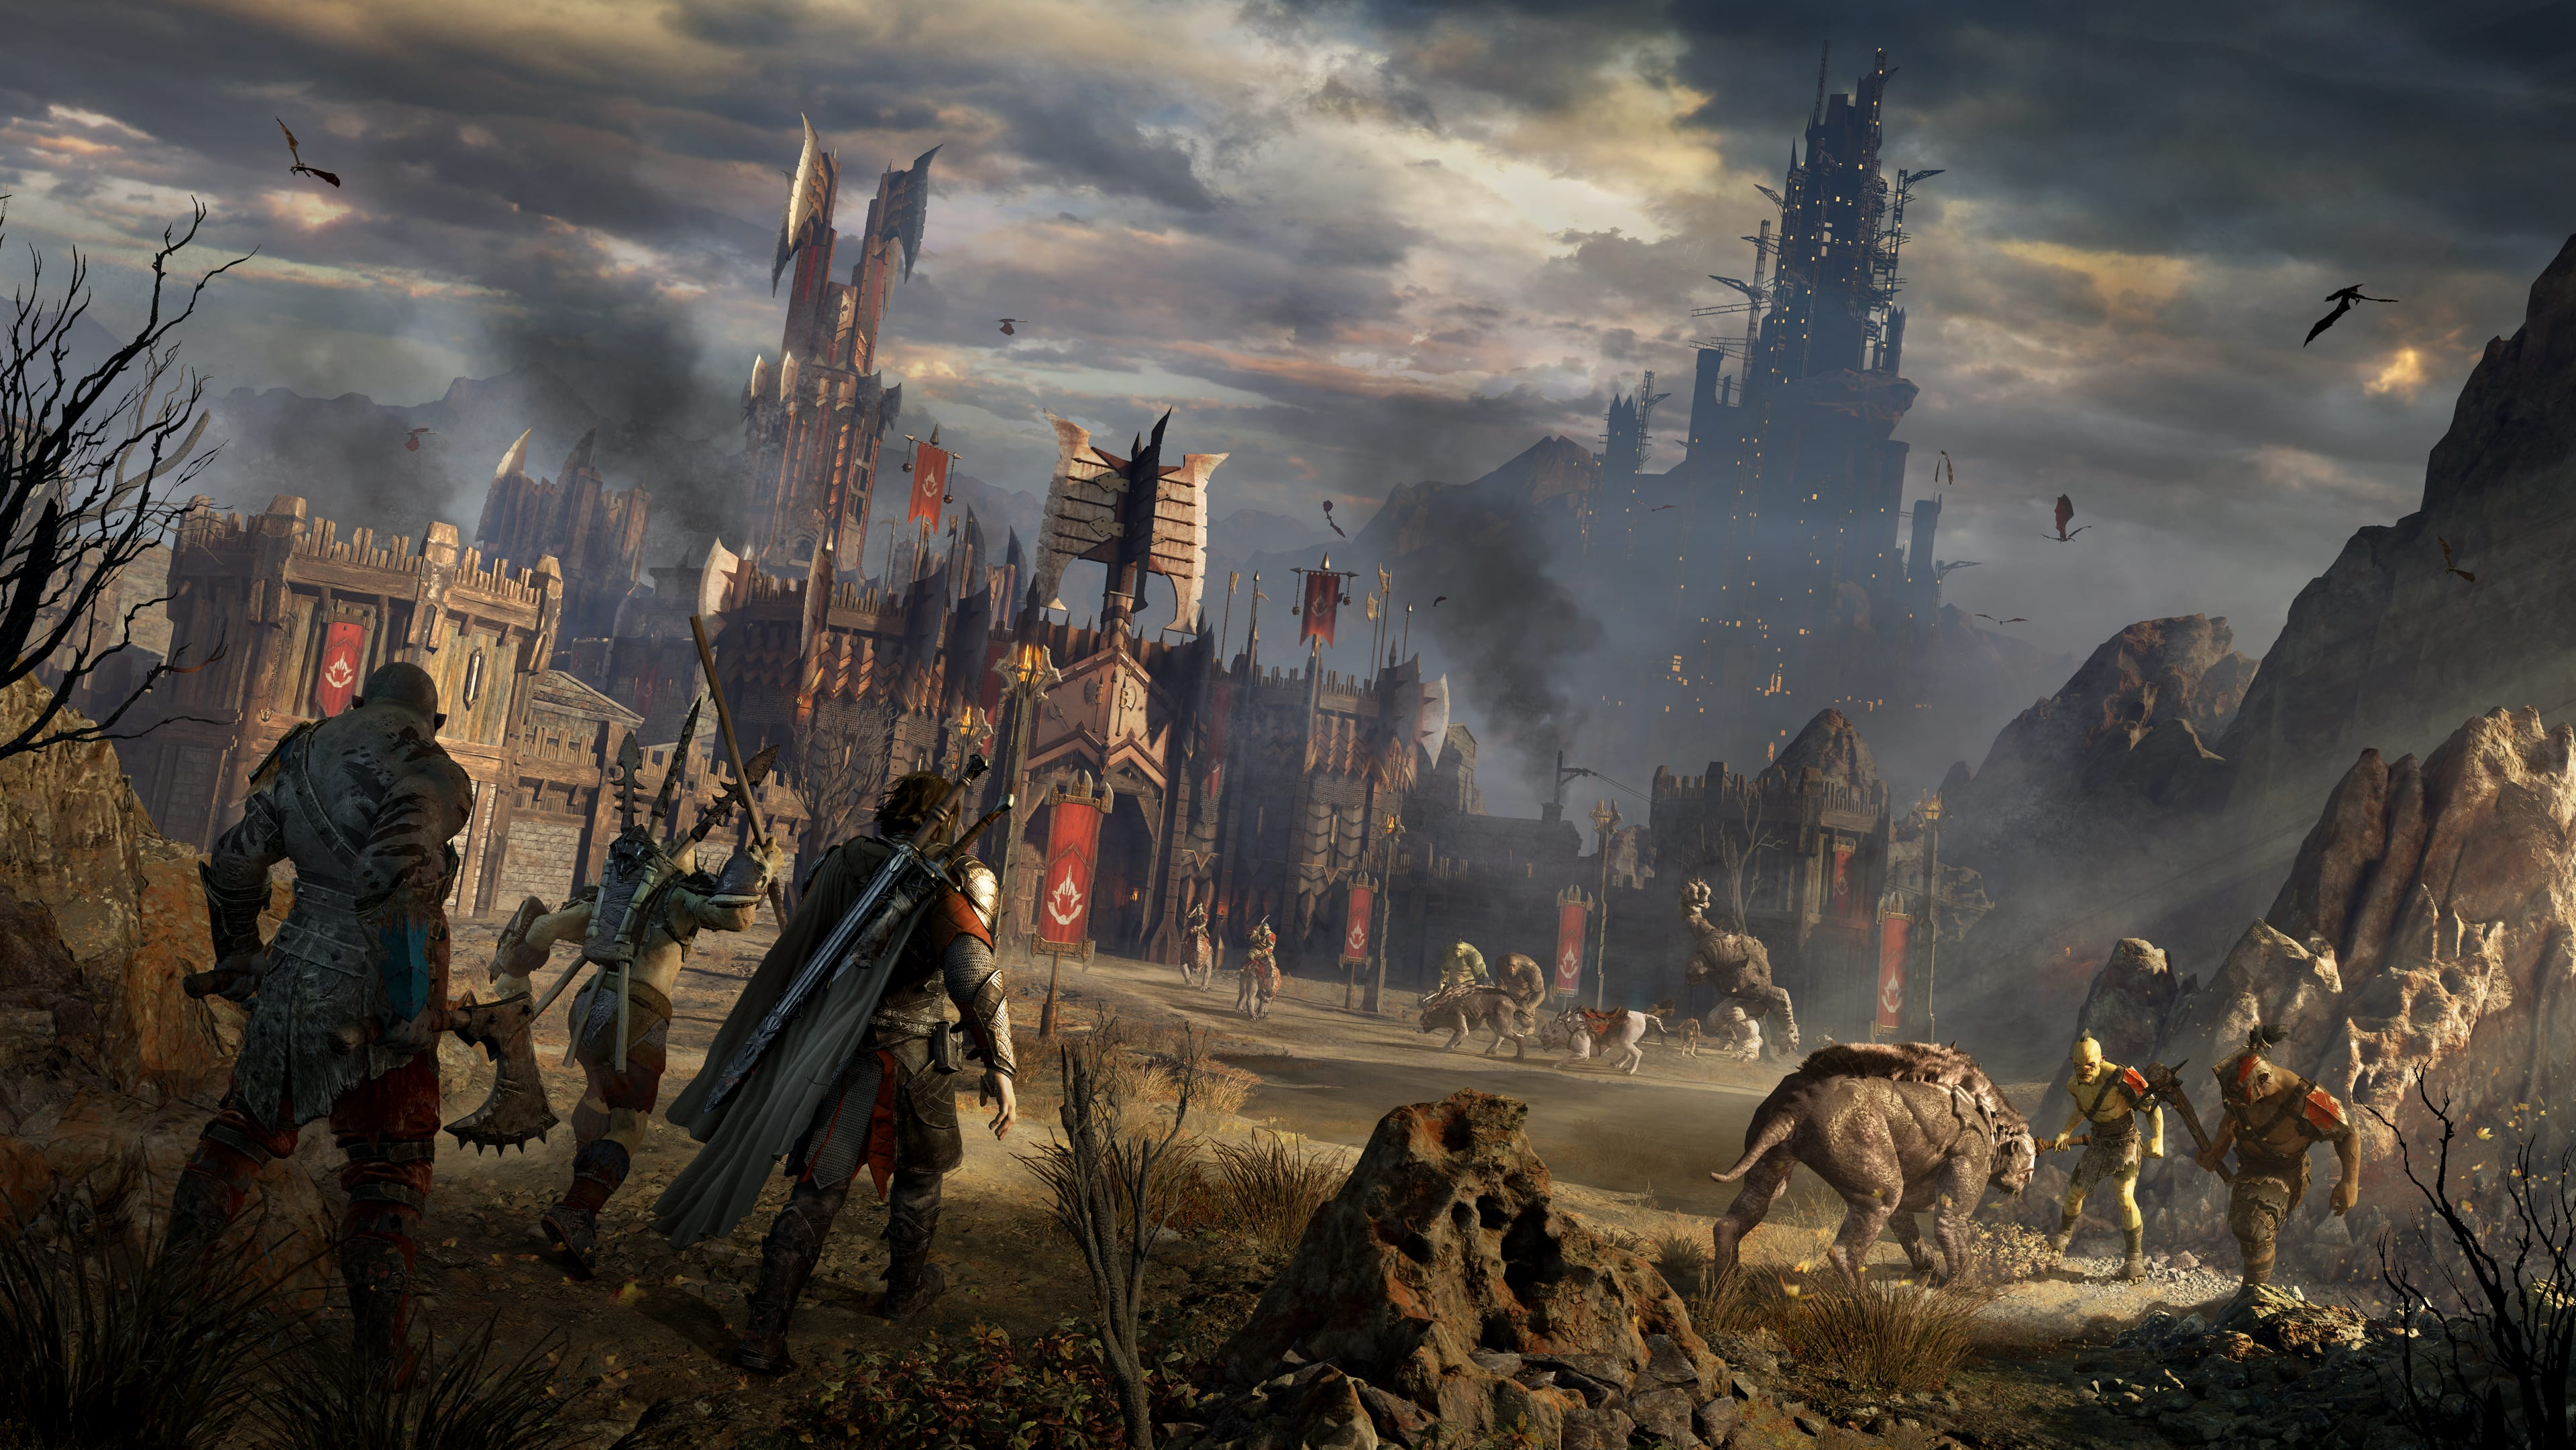 Talion marching to war